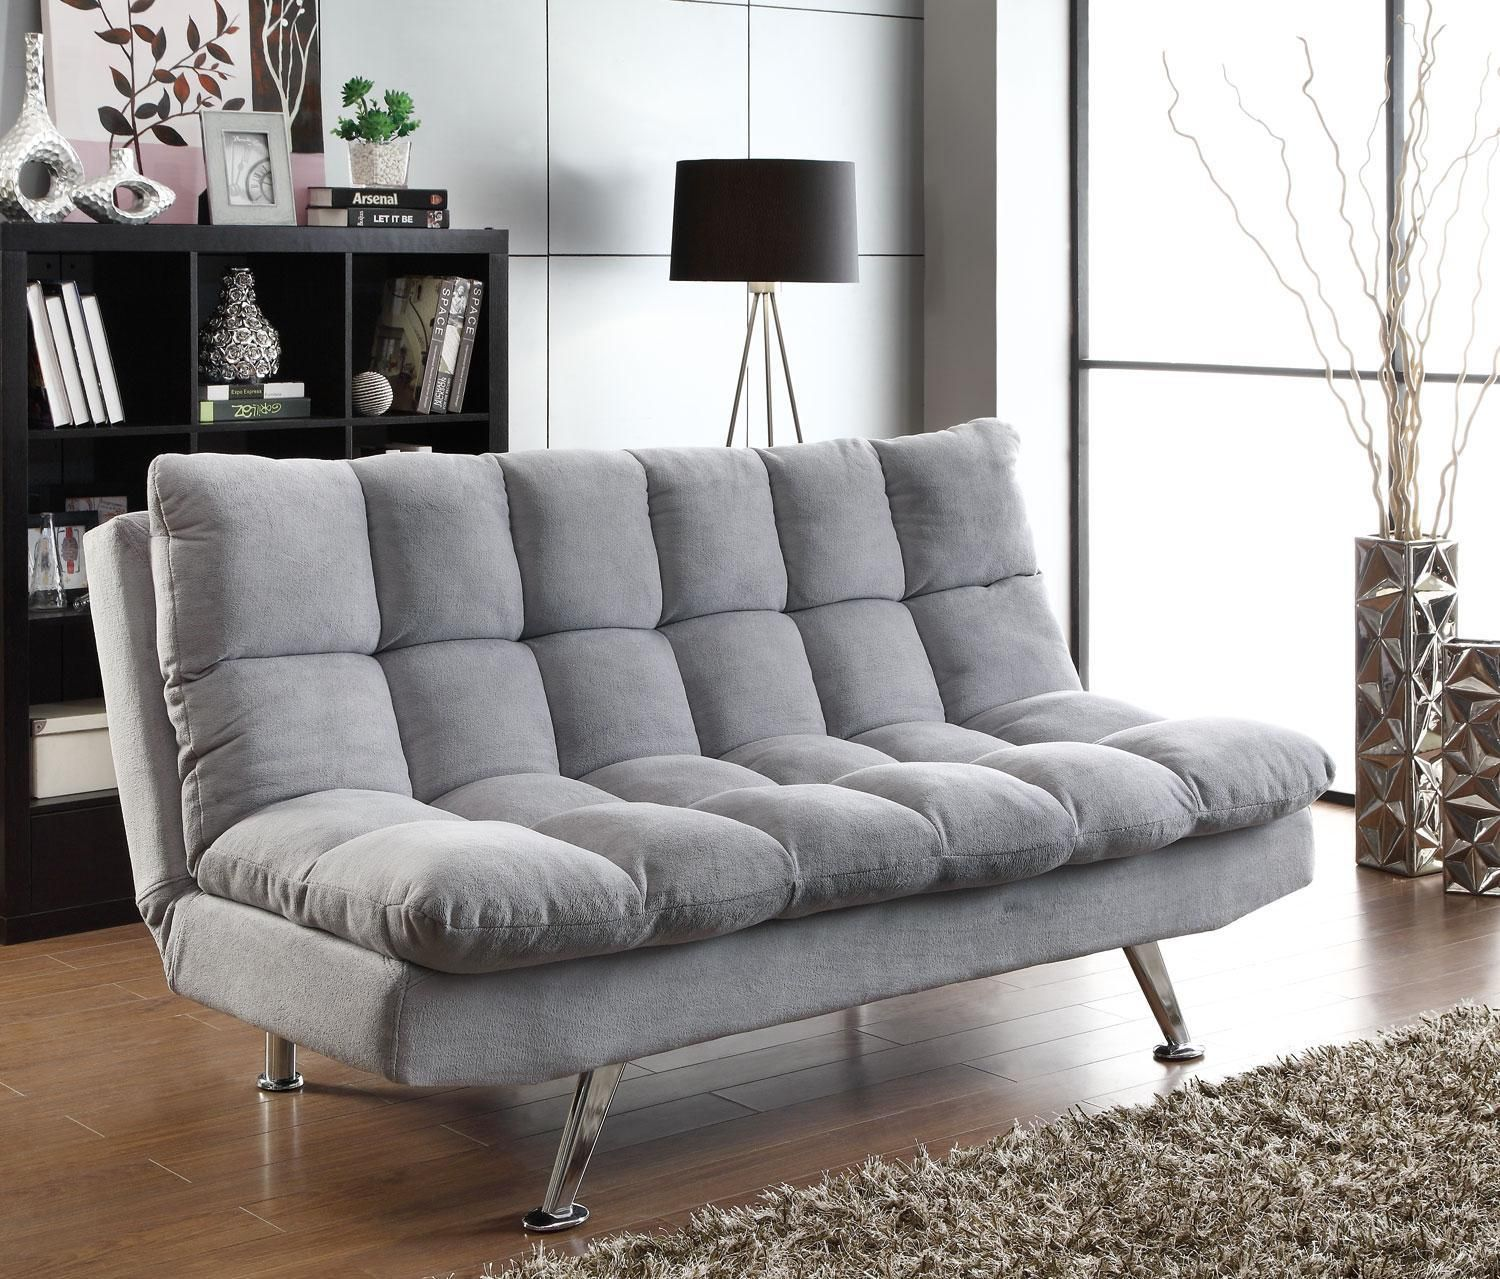 Coaster Cs775 Gray Padded Sofa Bed W Chrome Legs Products In